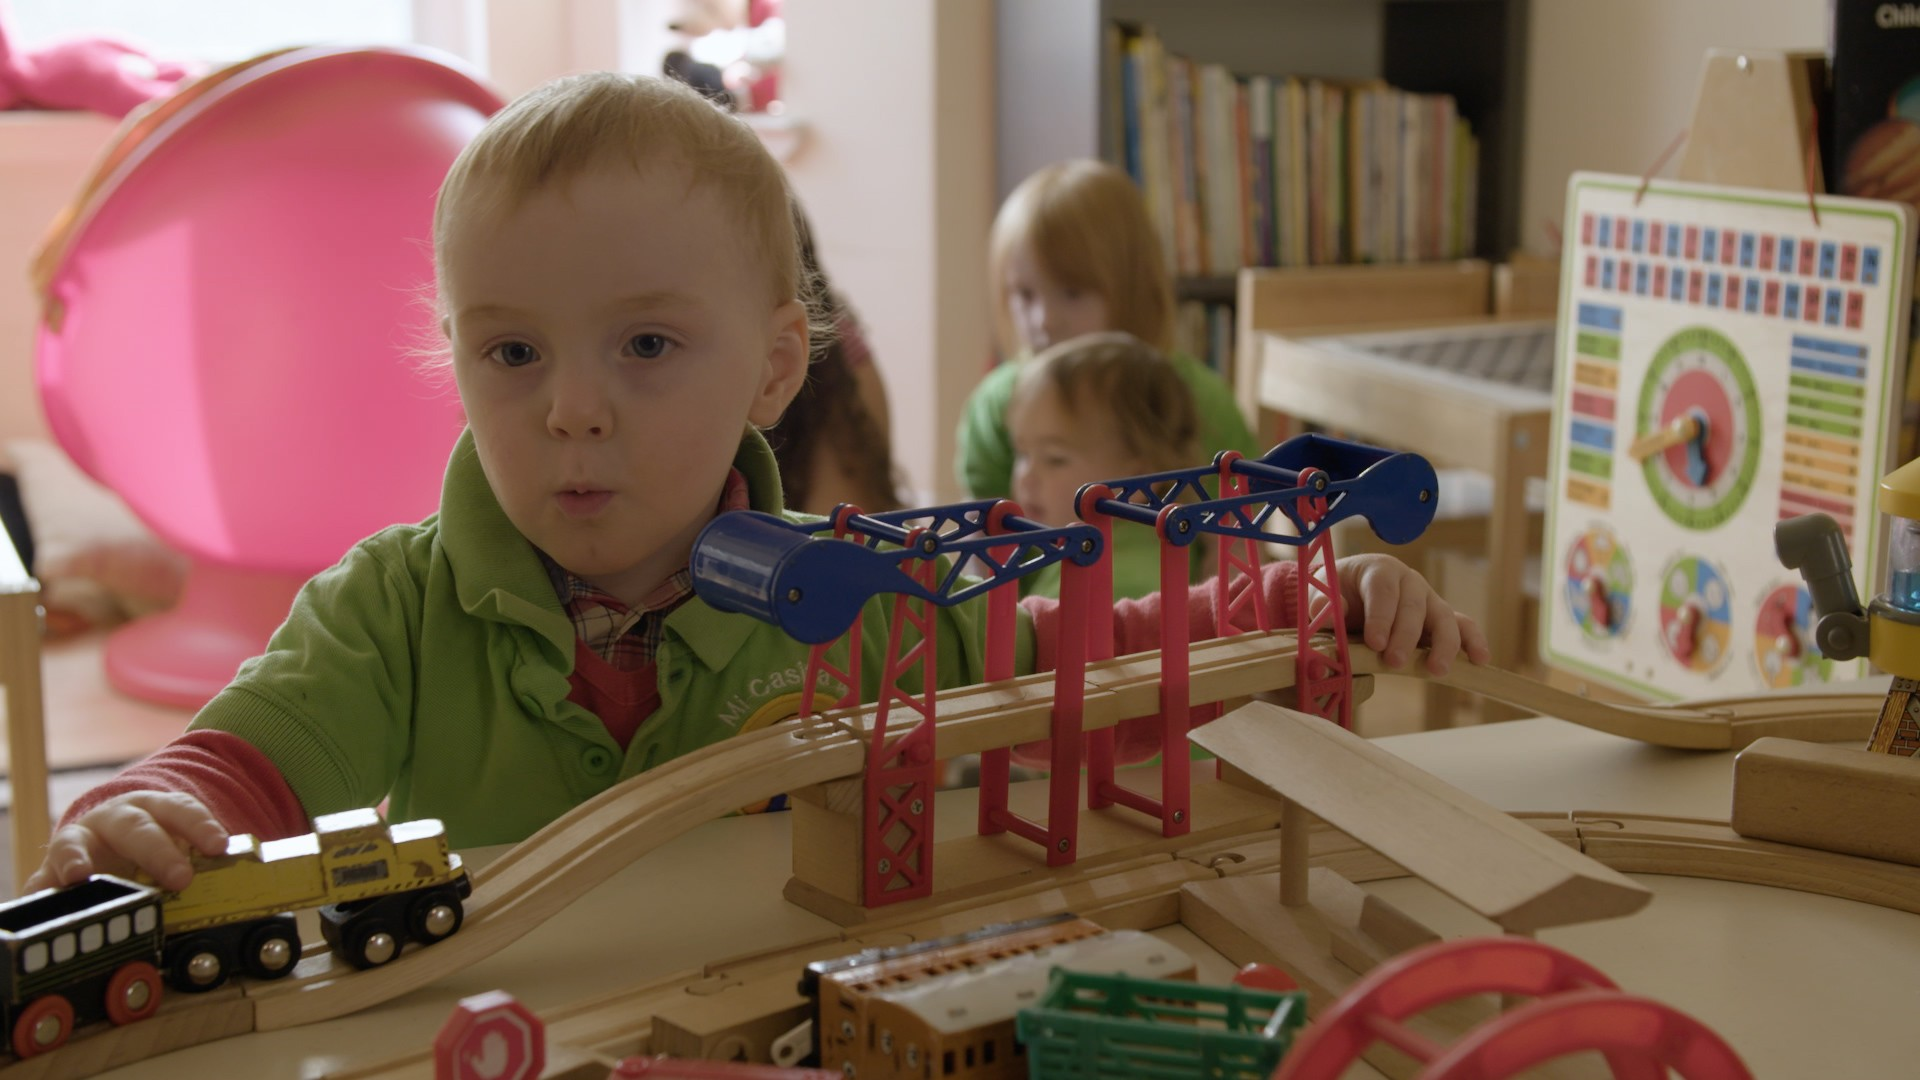 This Airbnb for pre-k is trying to disrupt early childhood education